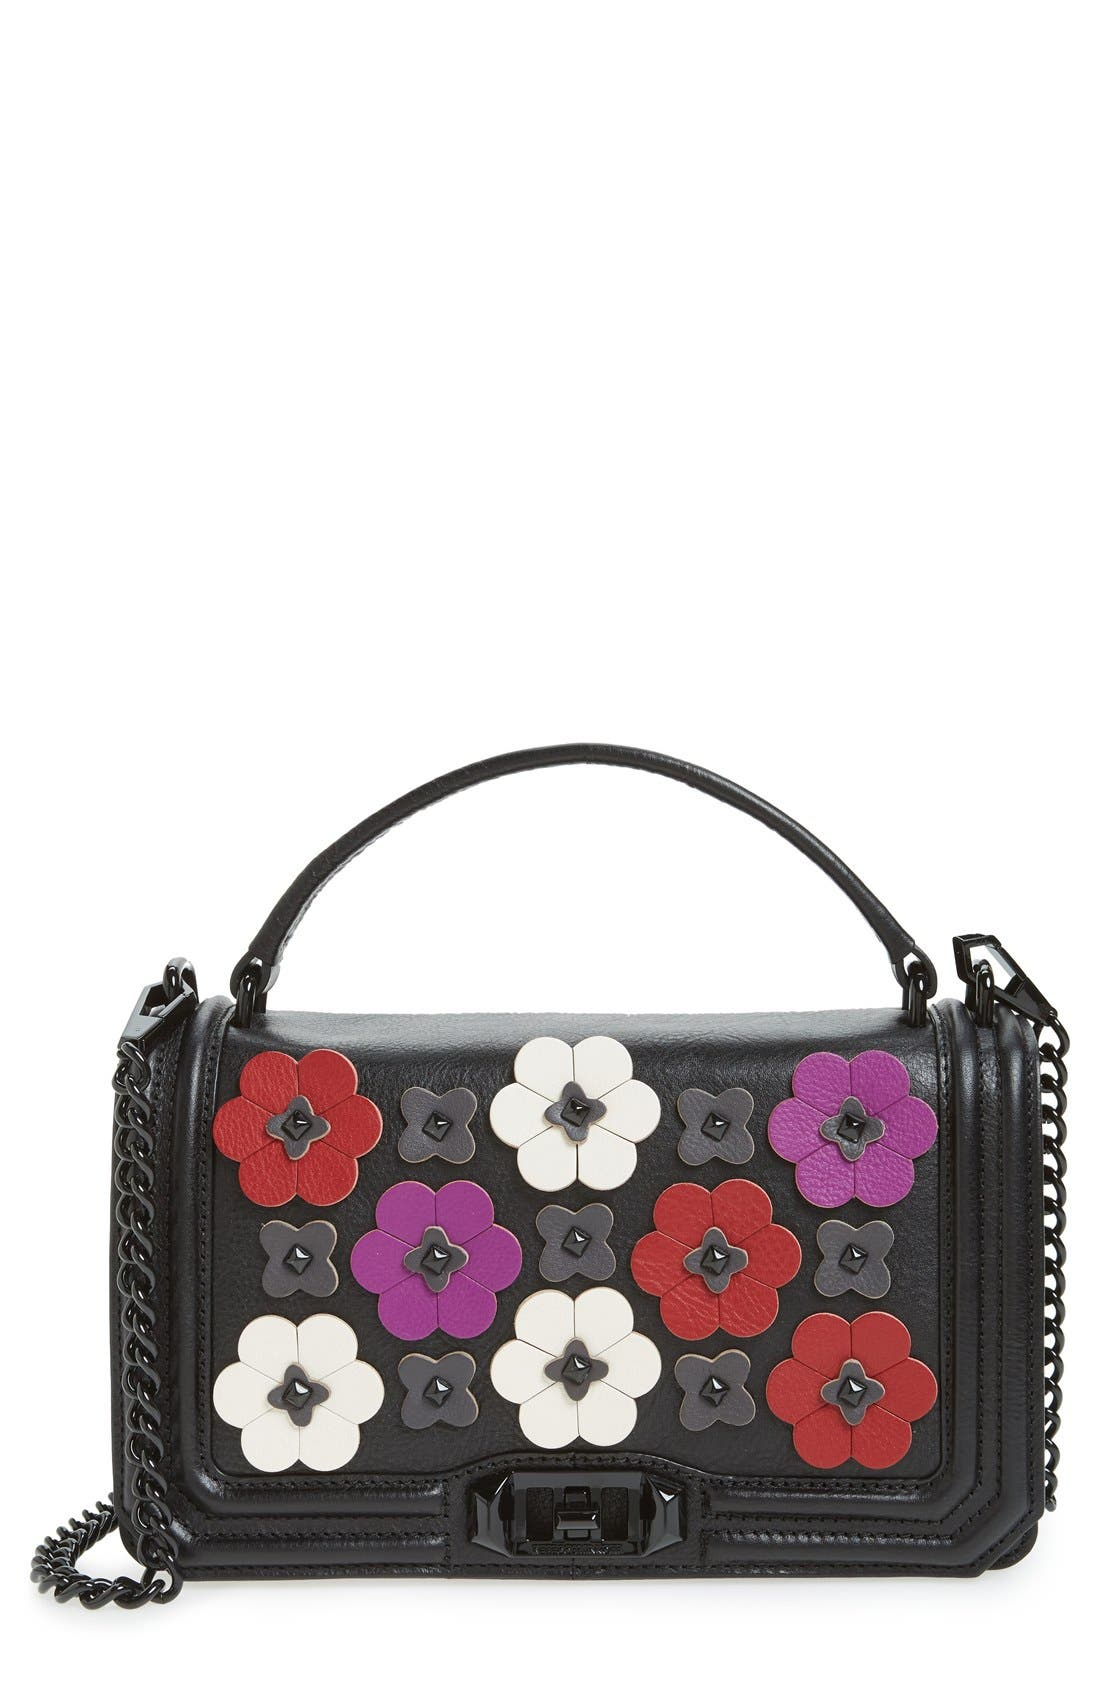 Alternate Image 1 Selected - Rebecca Minkoff Love Floral Appliqué Crossbody Bag